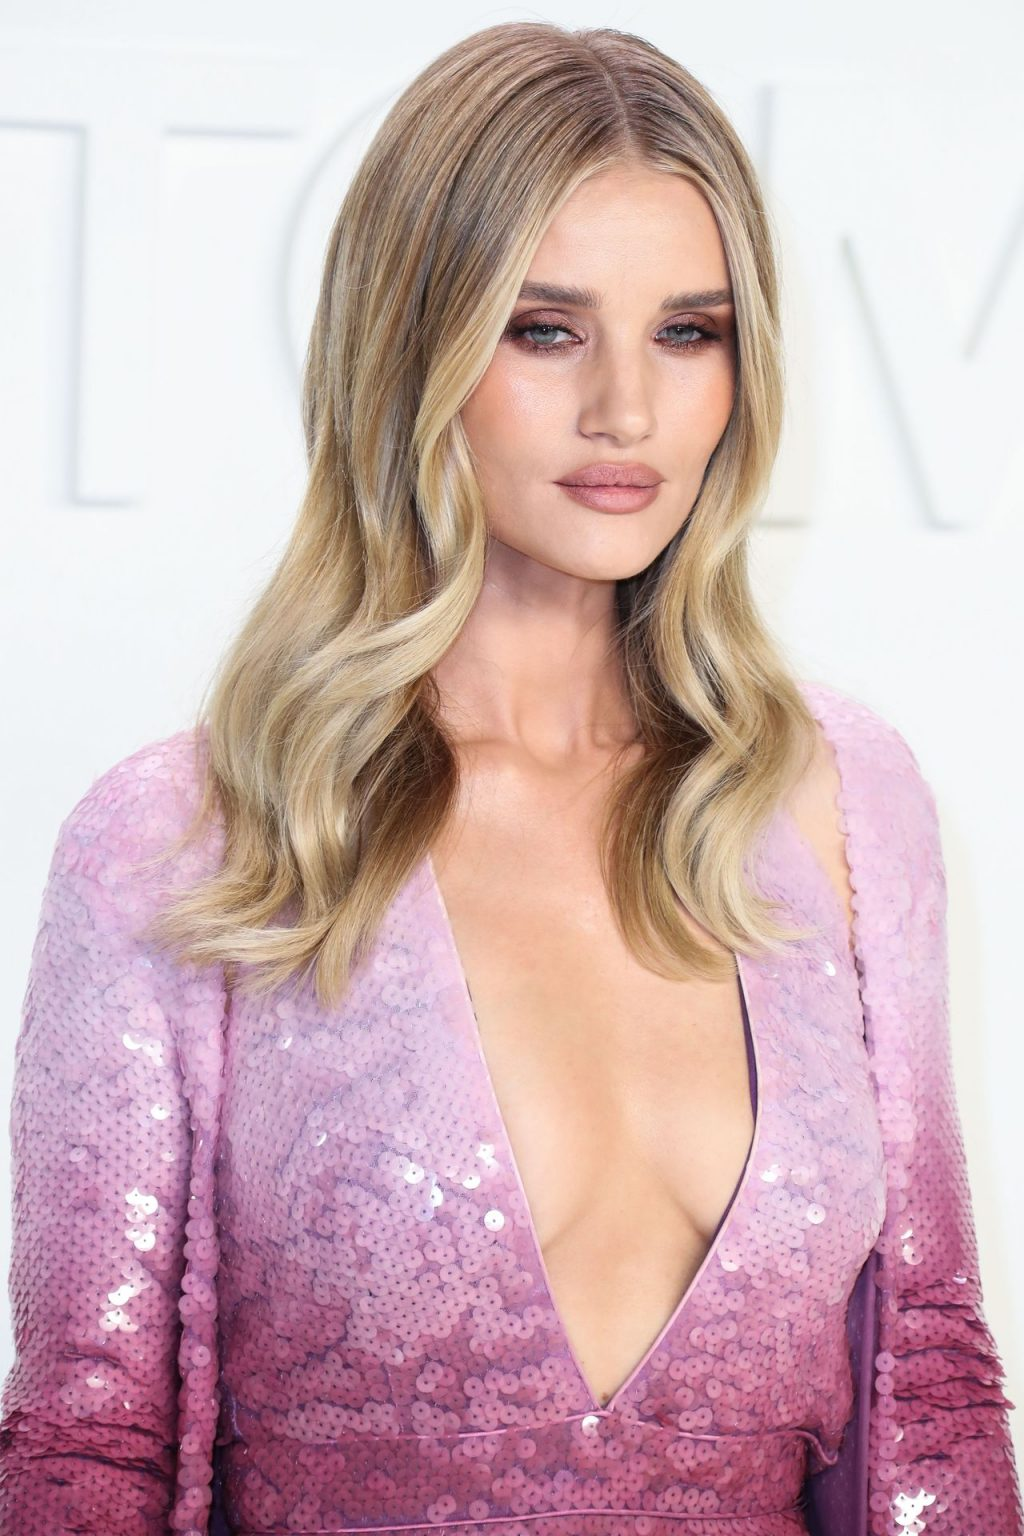 Rosie Huntington Whiteley Sexy The Fappening Blog 73 1024x1536 - Rosie Huntington-Whiteley Shows Her Cleavage at the Tom Ford Fashion Show (115 Photos)